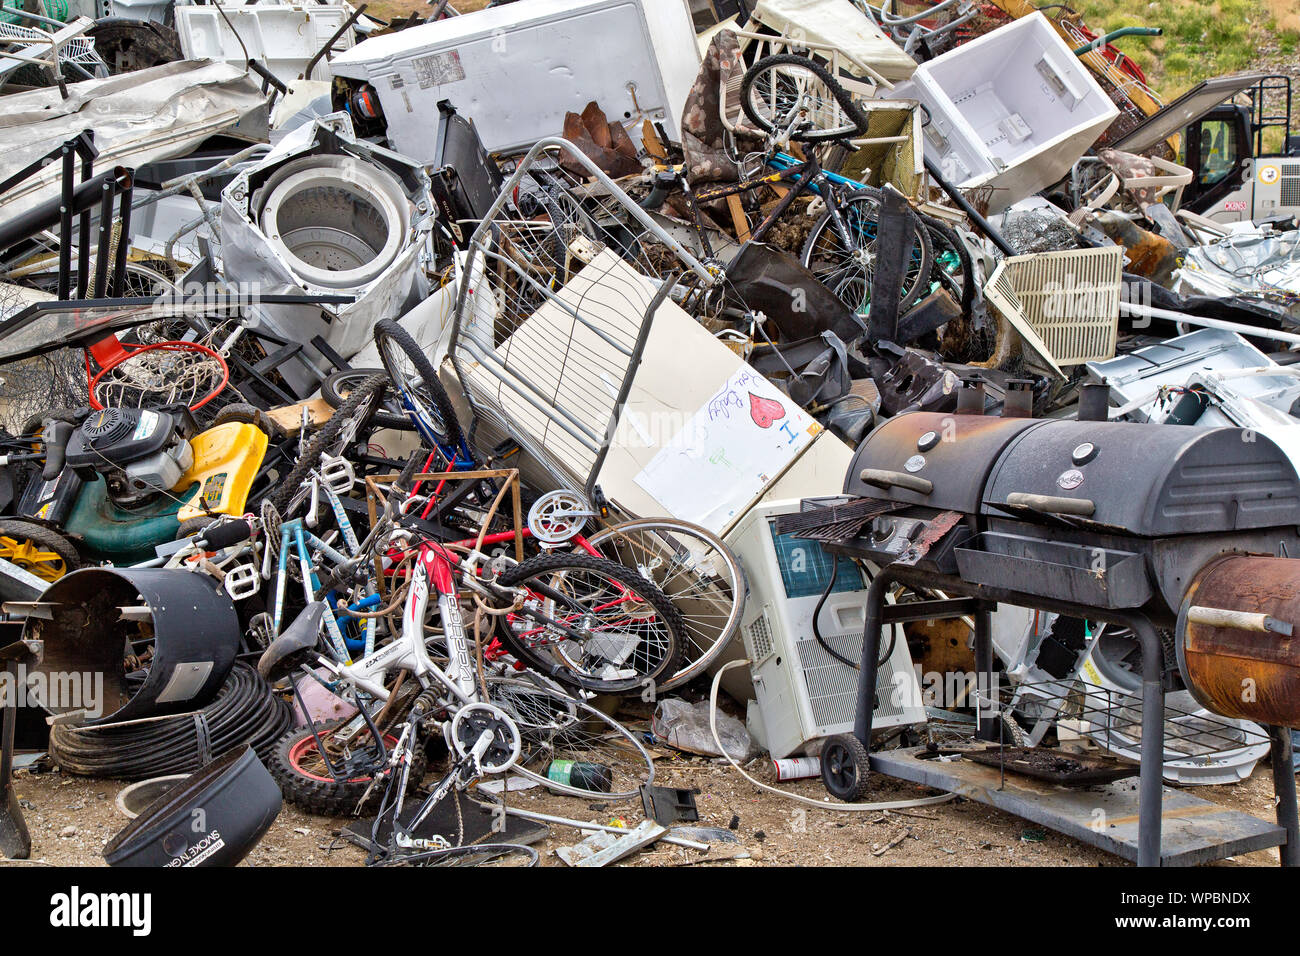 Landfill, collection site, discarded  'metal & plastic'  products. Stock Photo